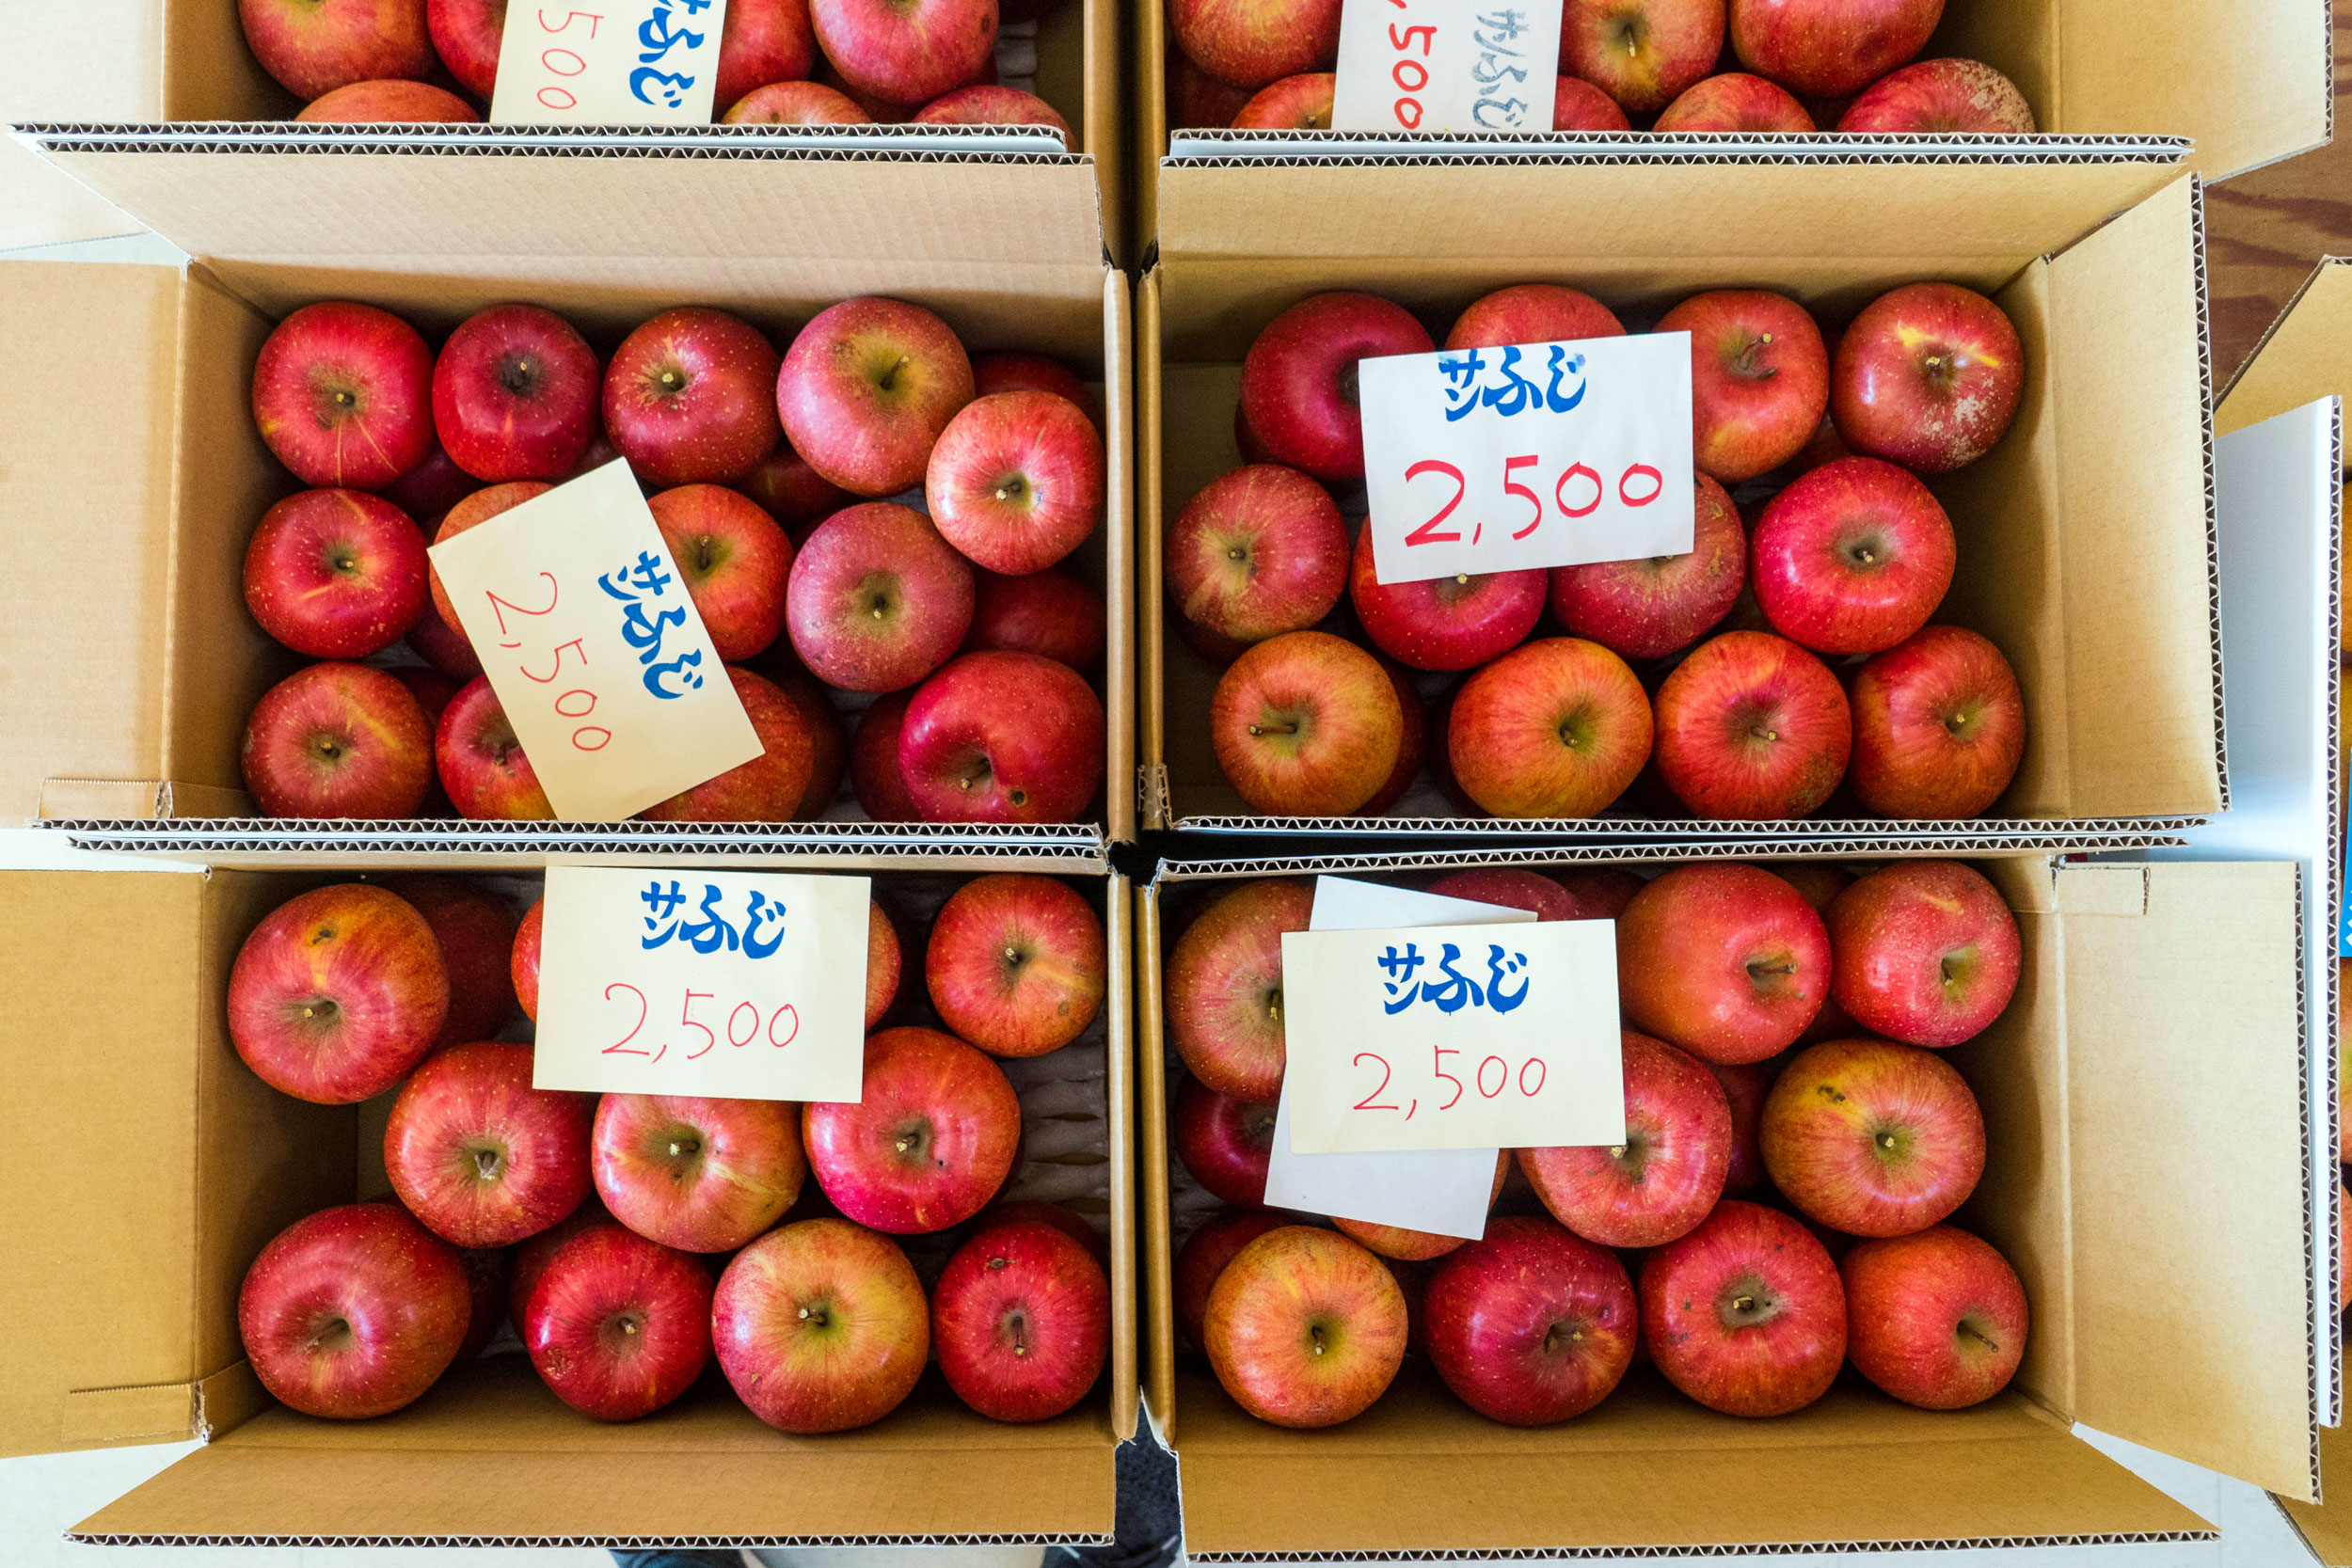 Apples in boxes